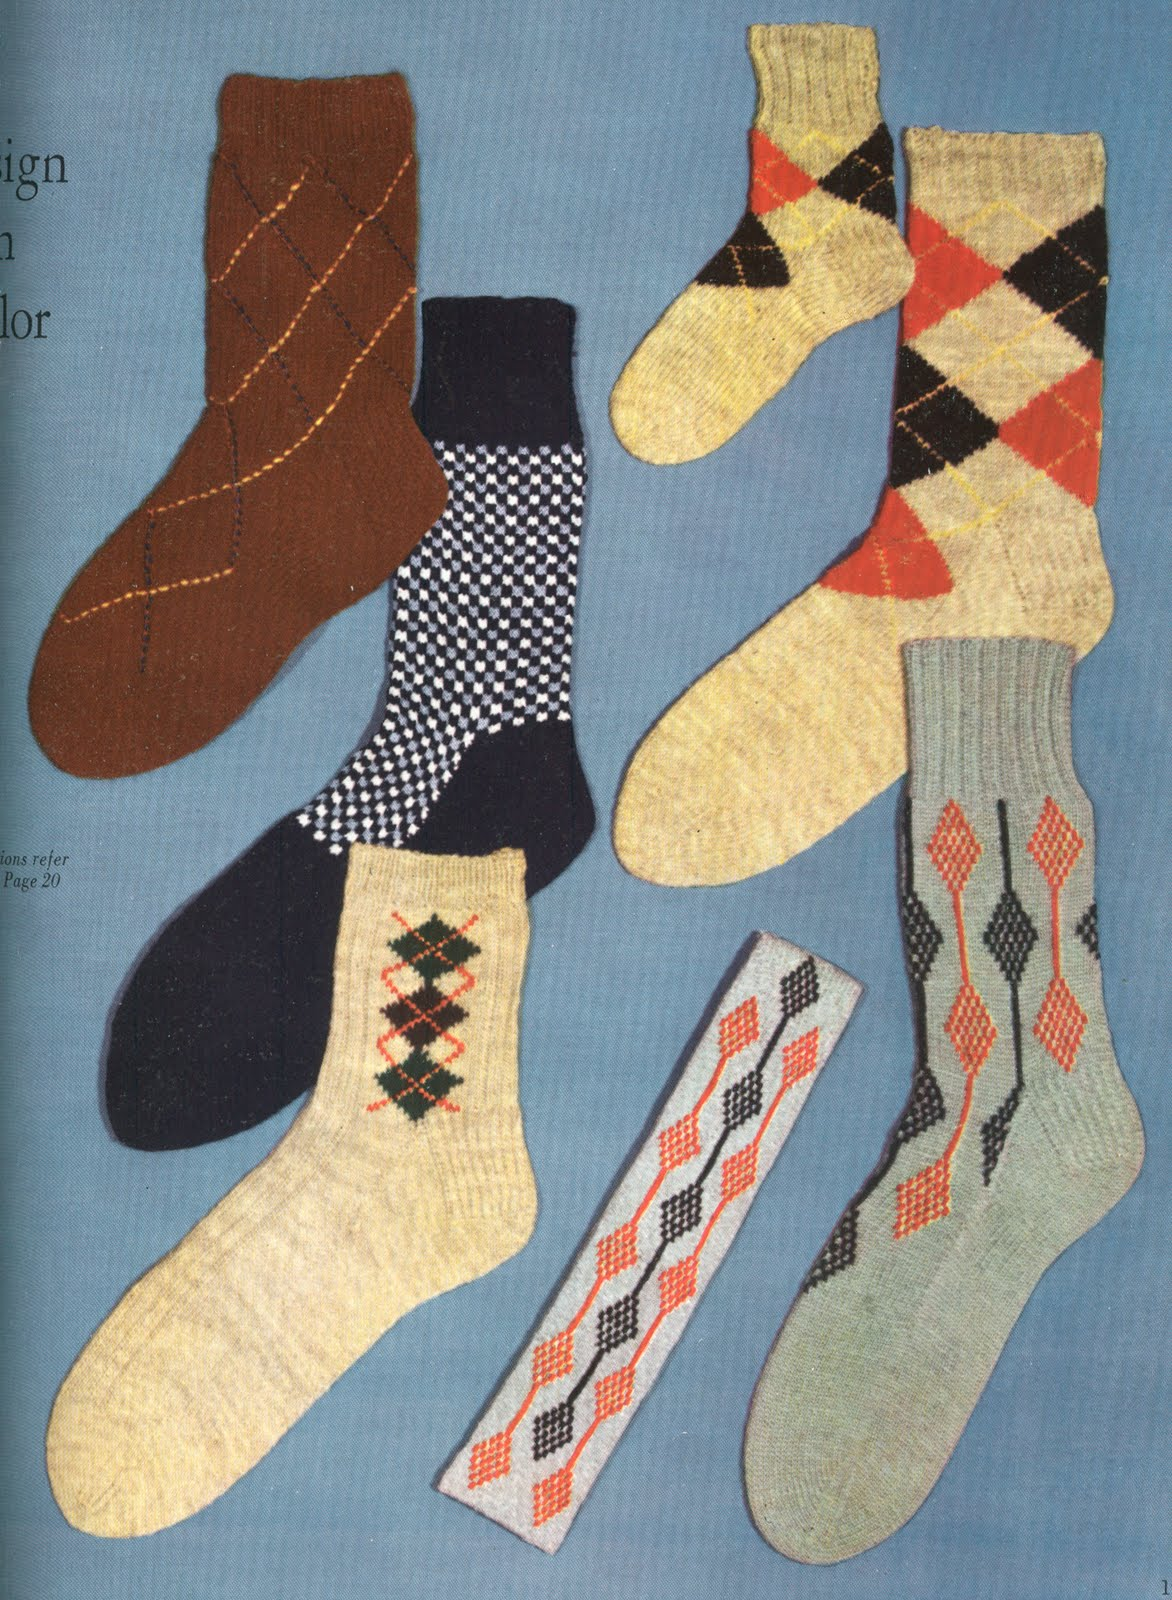 Vintage Bulletin, the Vintage Clothing blog: Every Man Needs a Sock ...